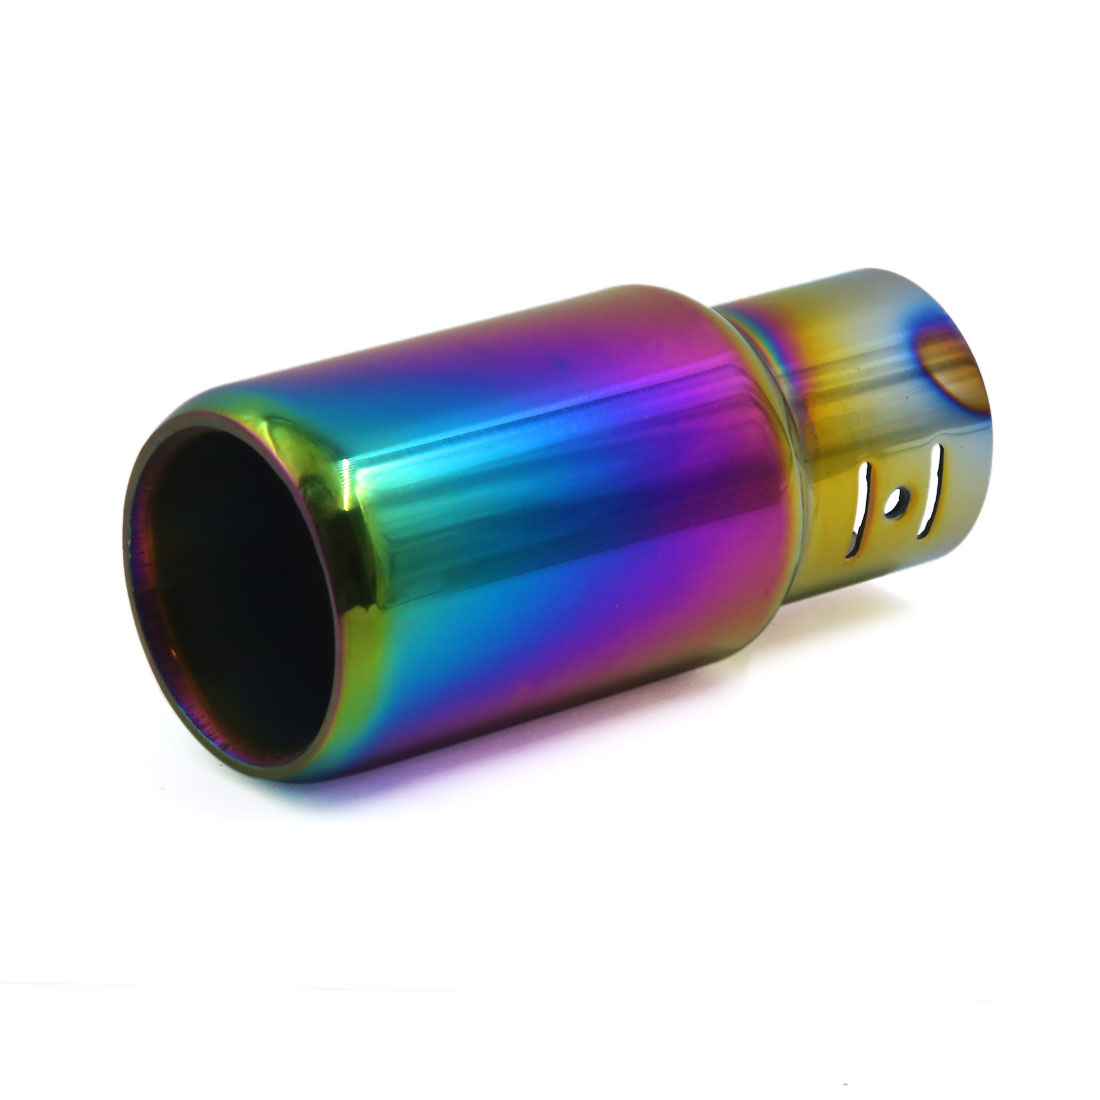 Colorful Exhaust Muffler Tip Modified Silencer Tail Pipe for Vehicle Car